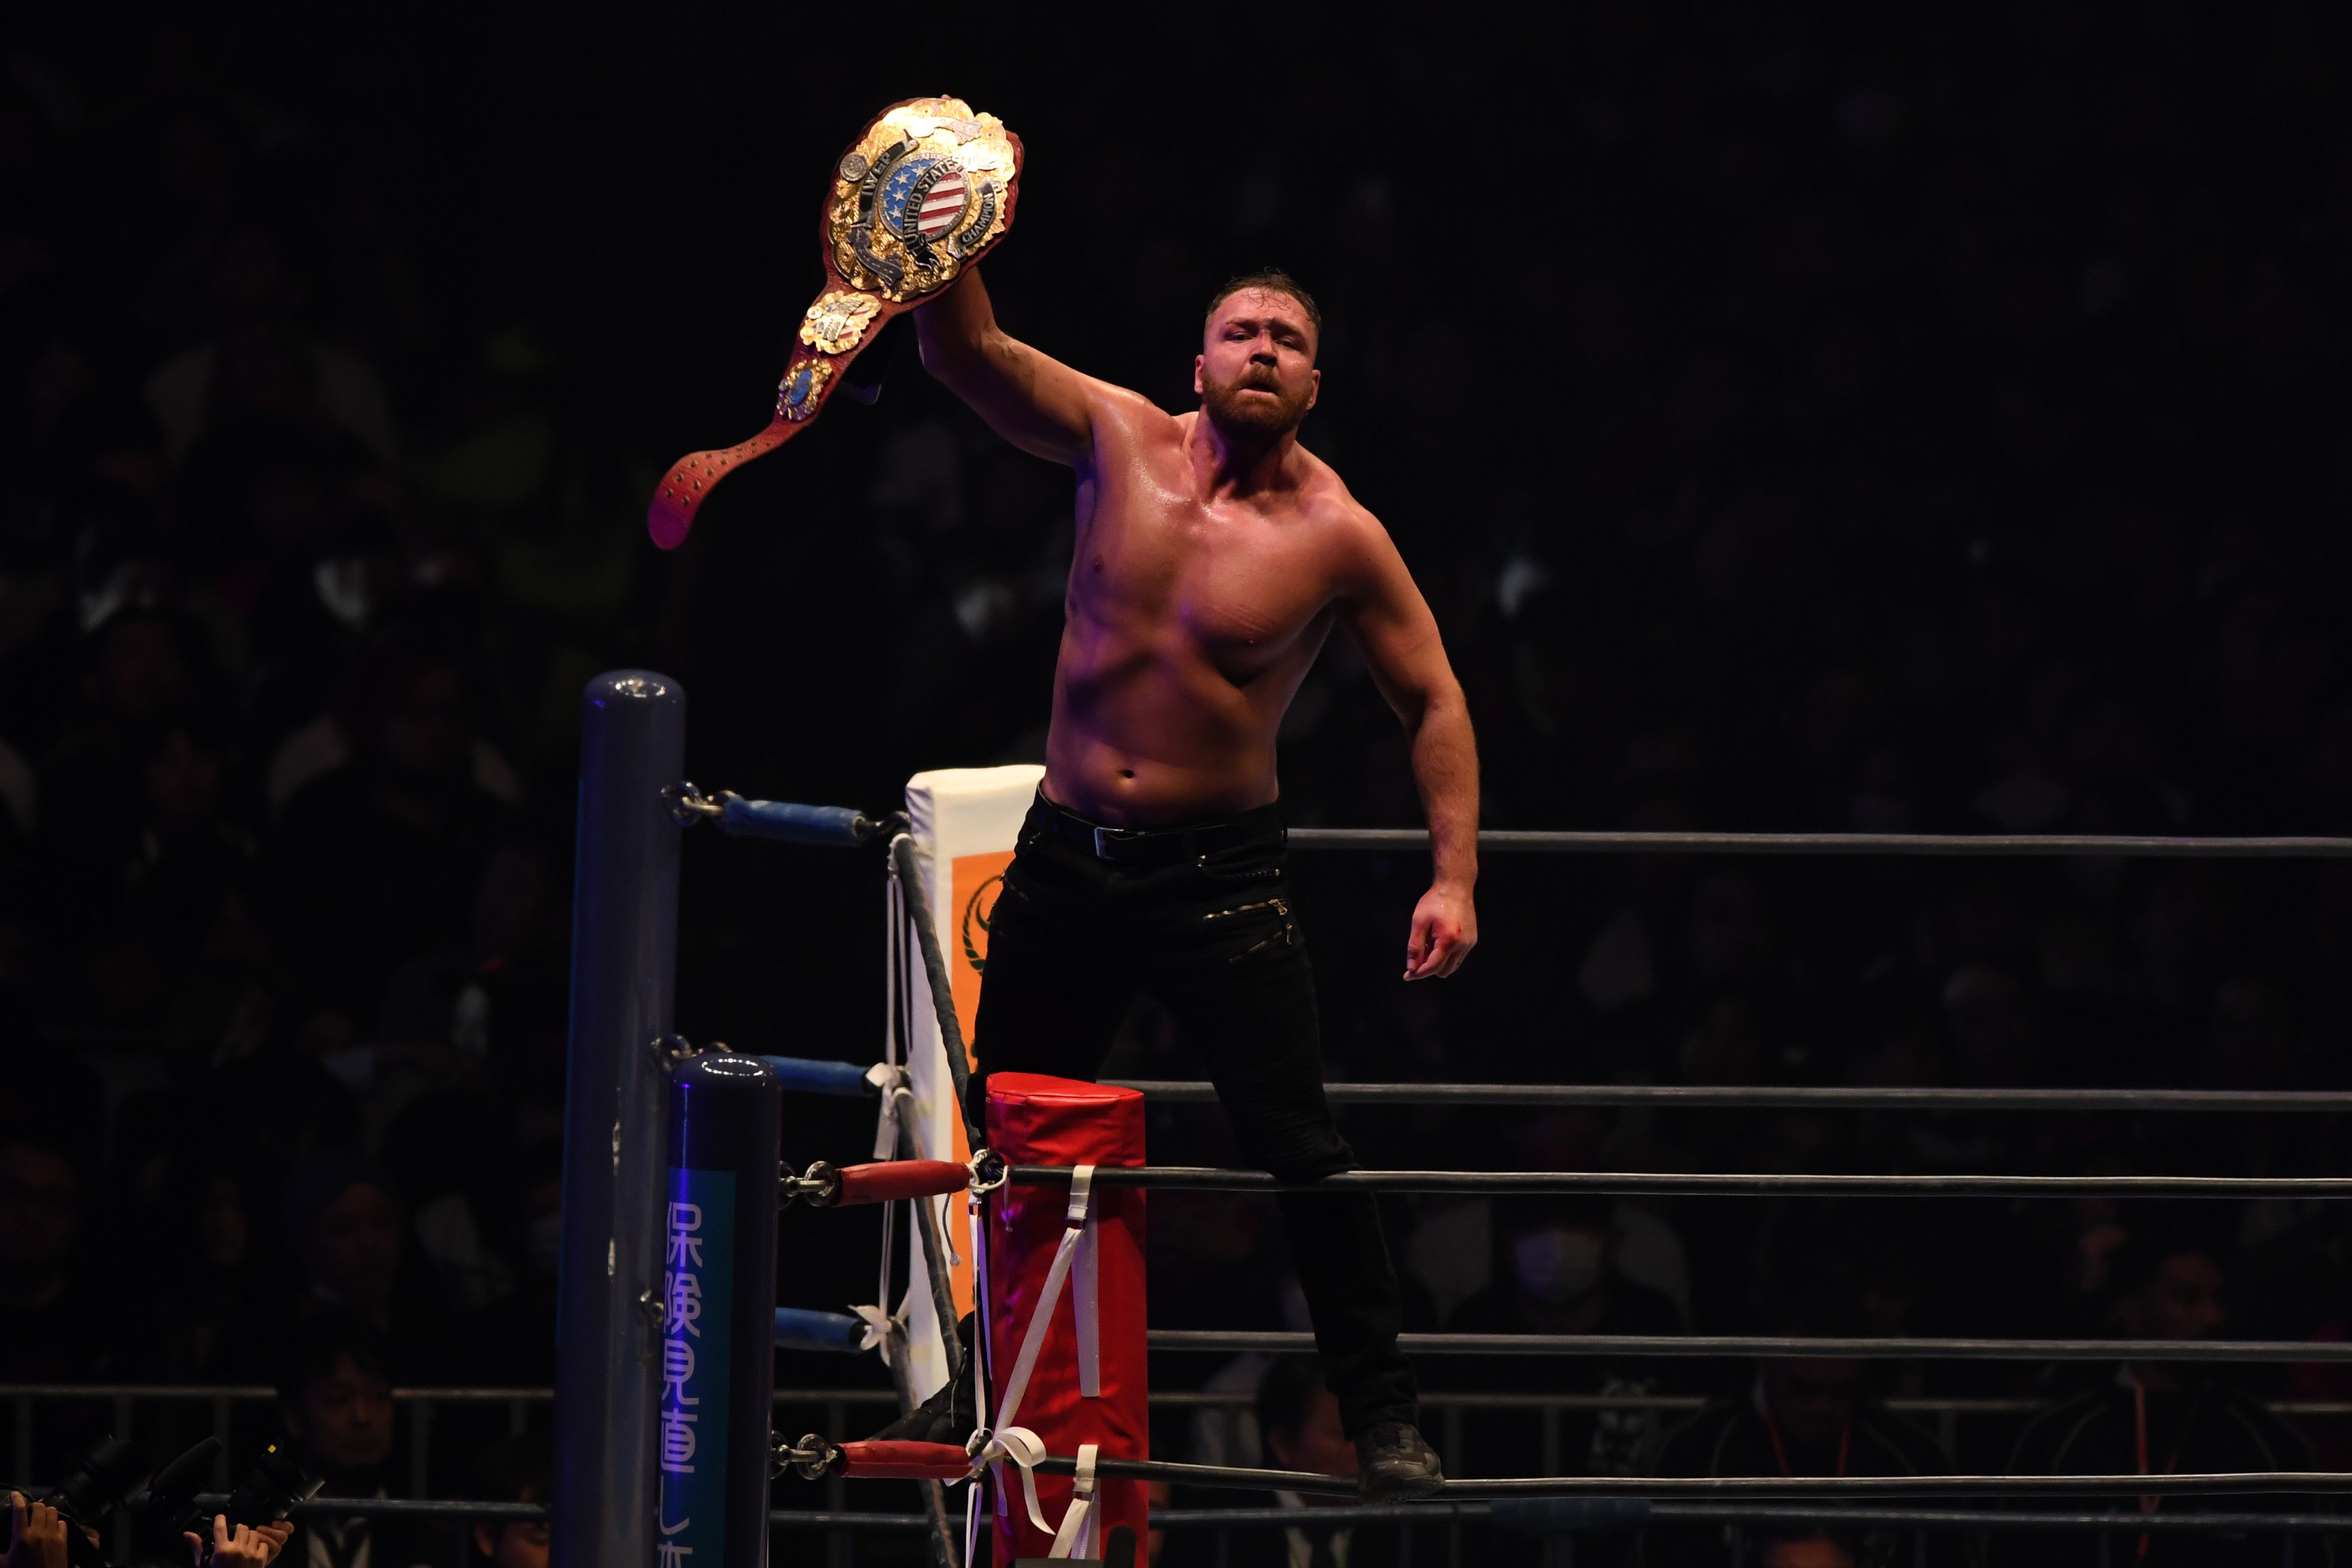 Jon Moxley holdling up the IWGP United States Heavyweight Championship